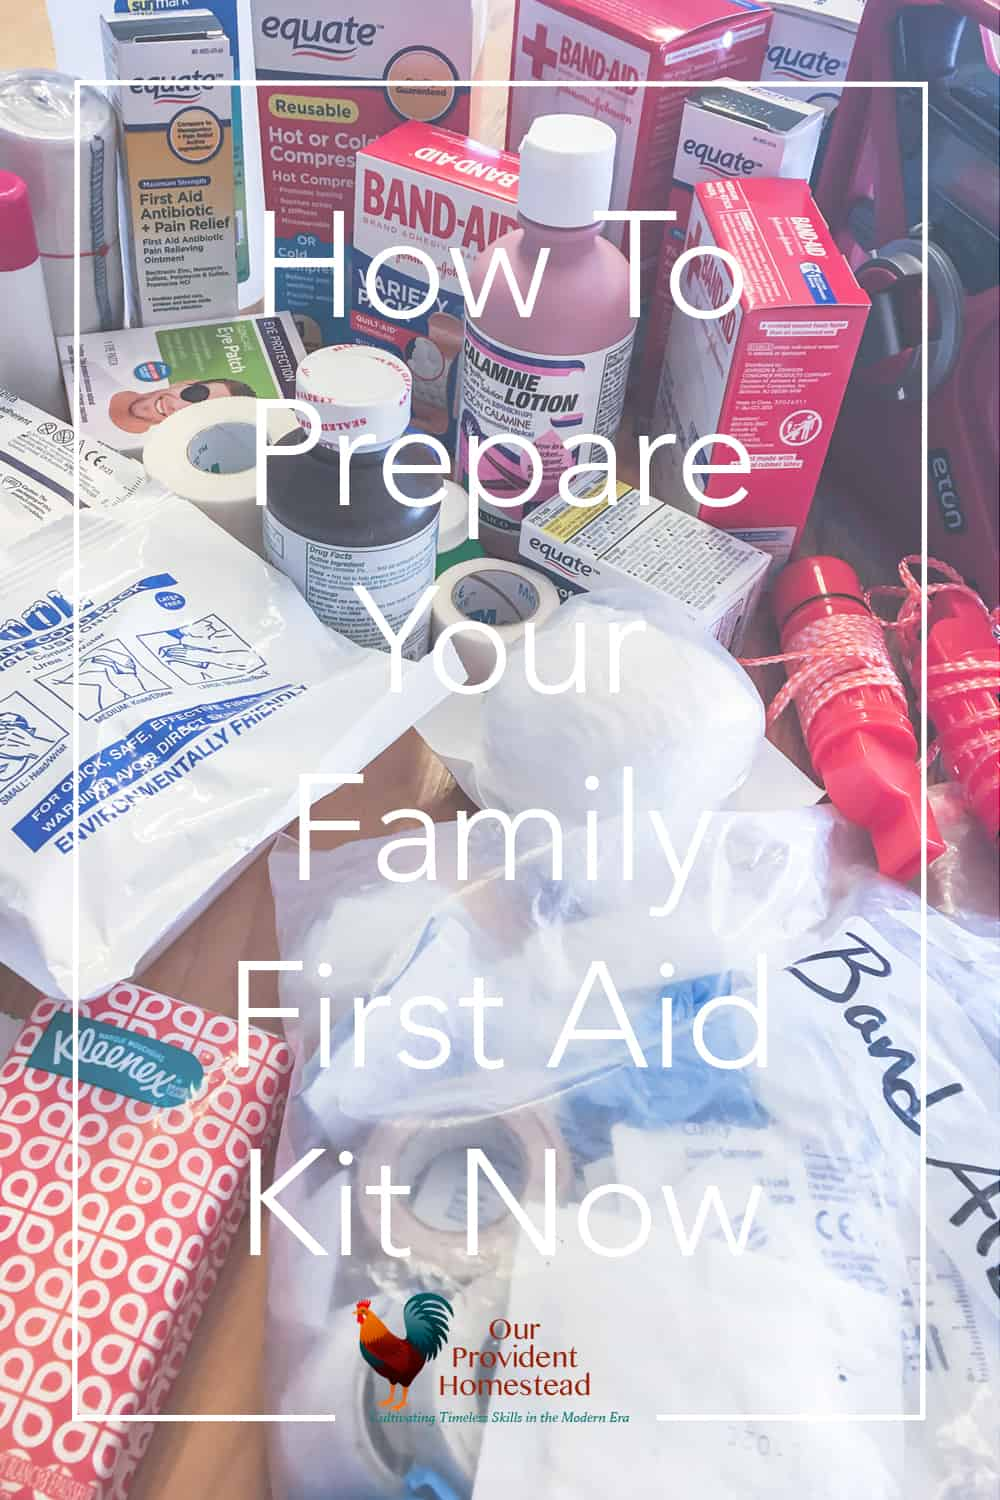 Do you have a family first aid kit? We go over why you should have one and what kinds of things you should keep in it for everyday and emergencies. Family First Aid | First Aid Kit | Emergency Preparedness